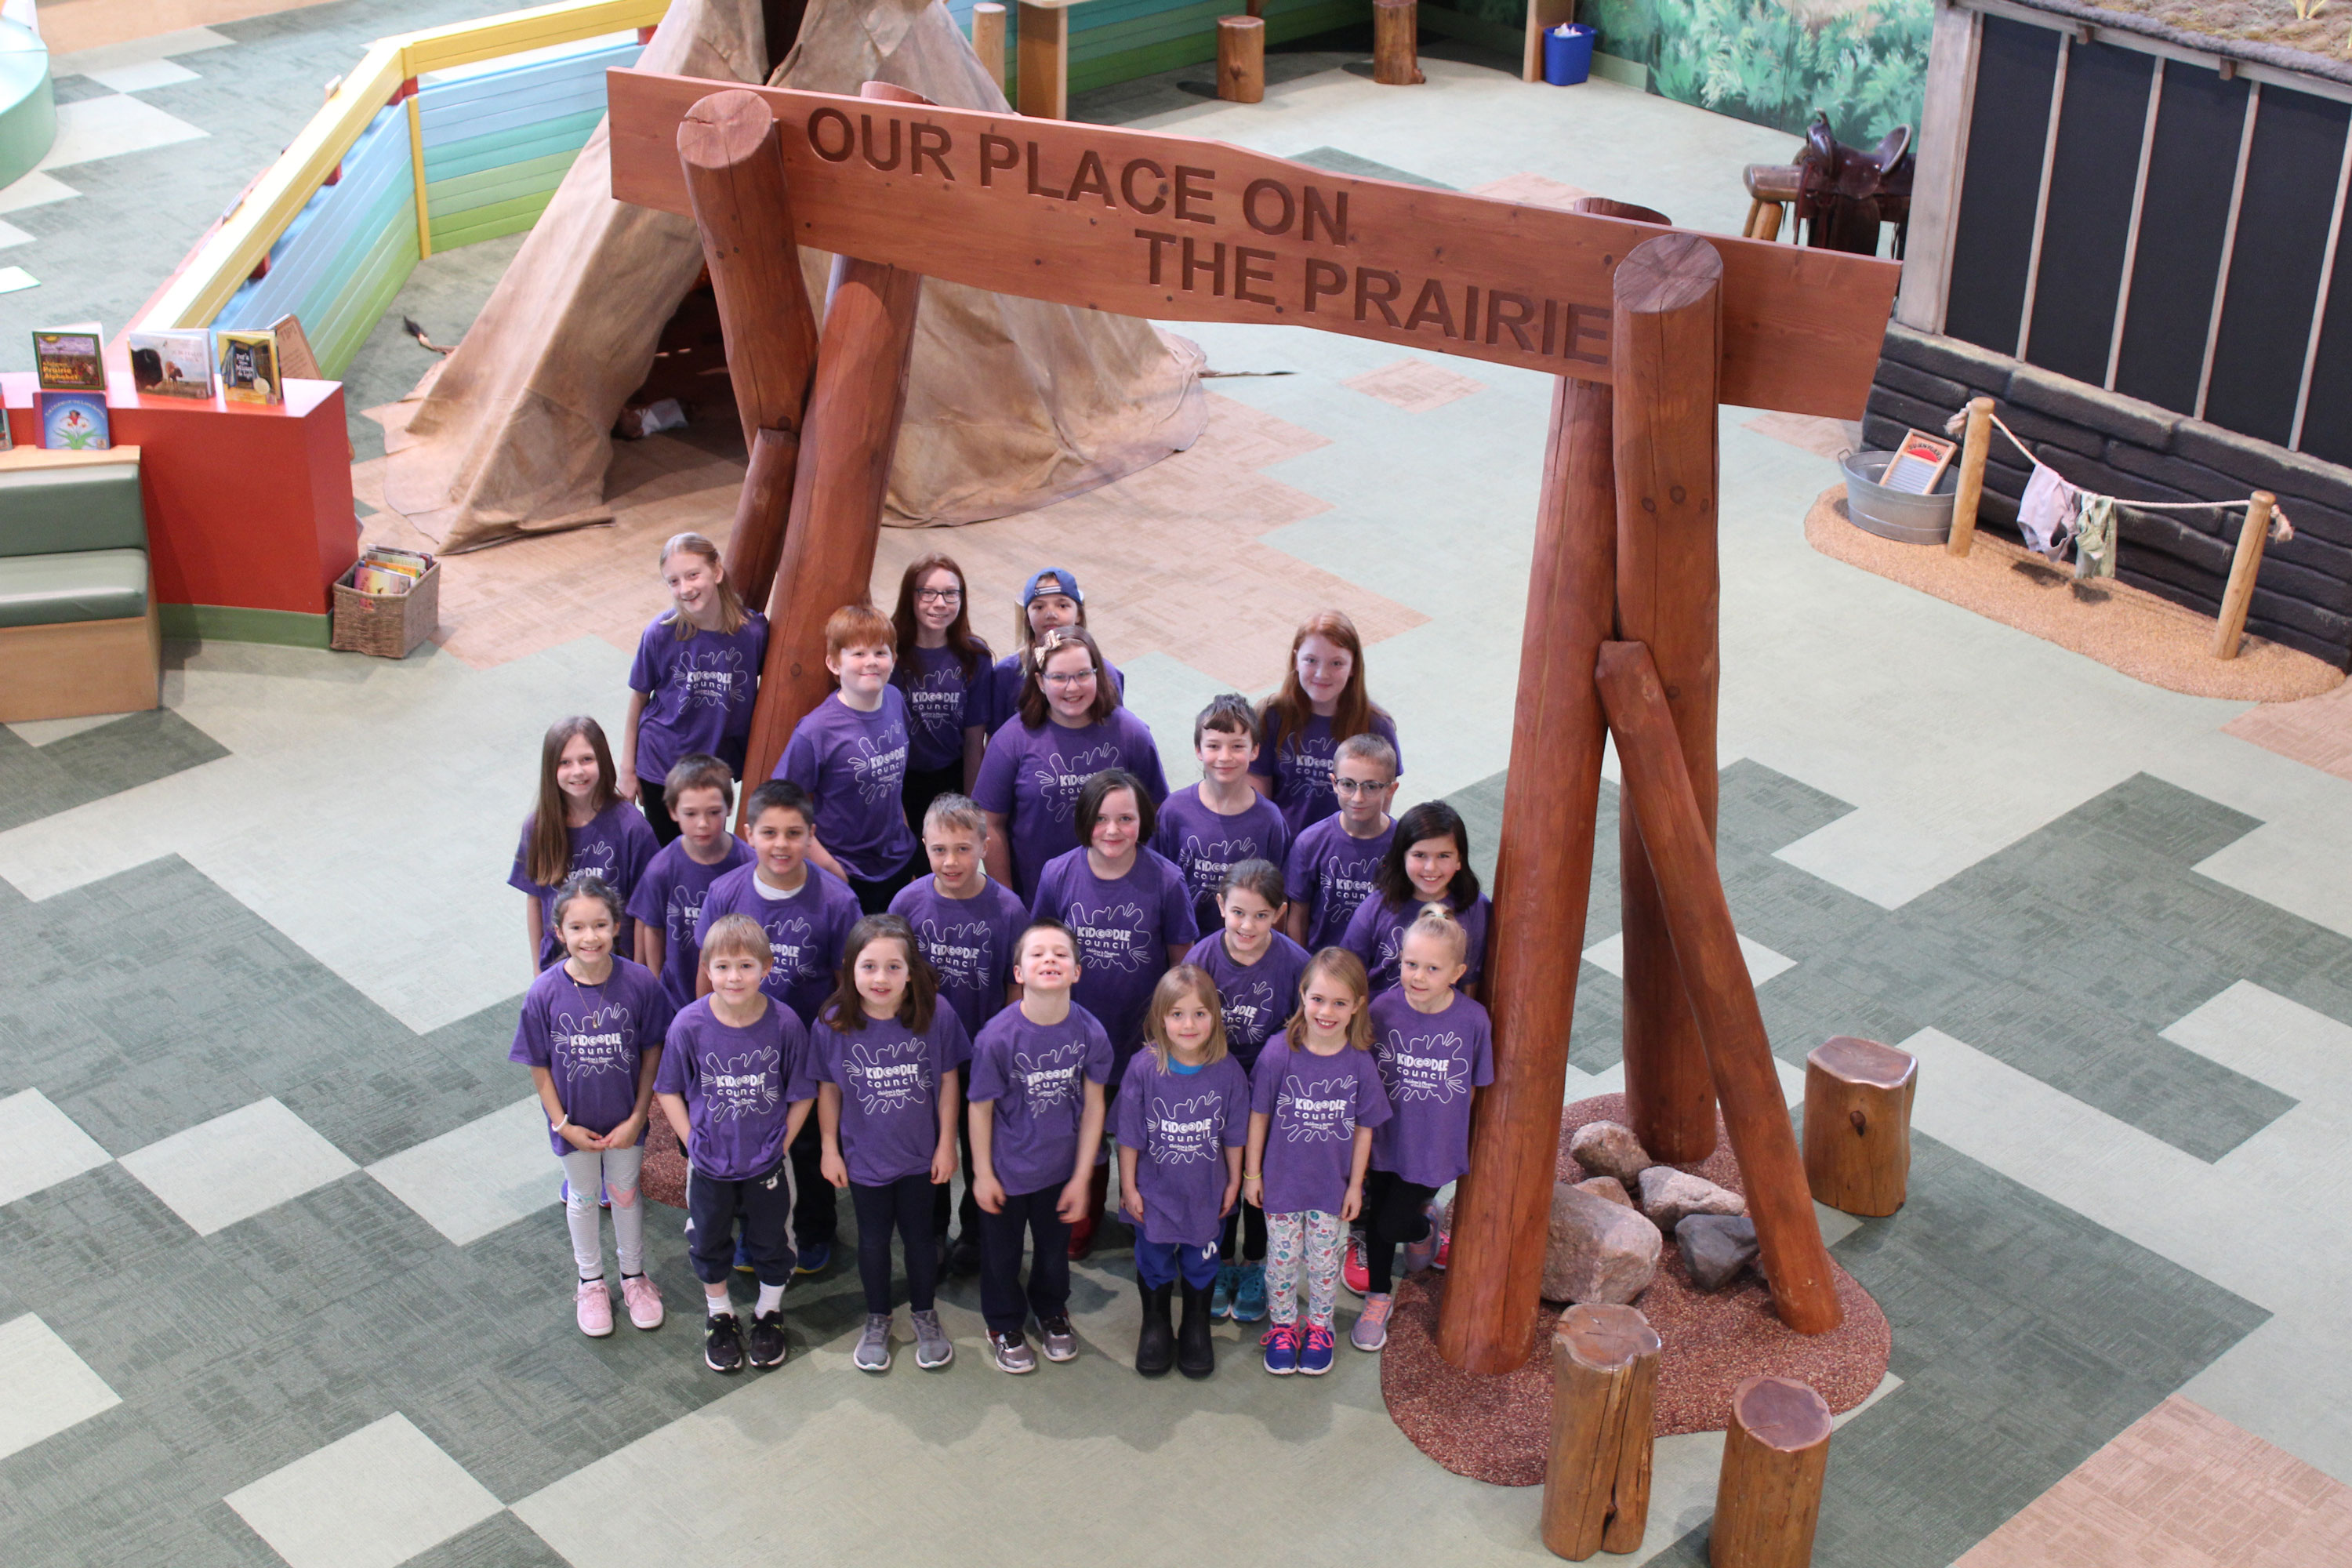 Group photo of Youth Advisory Board on prairie of Children's museum